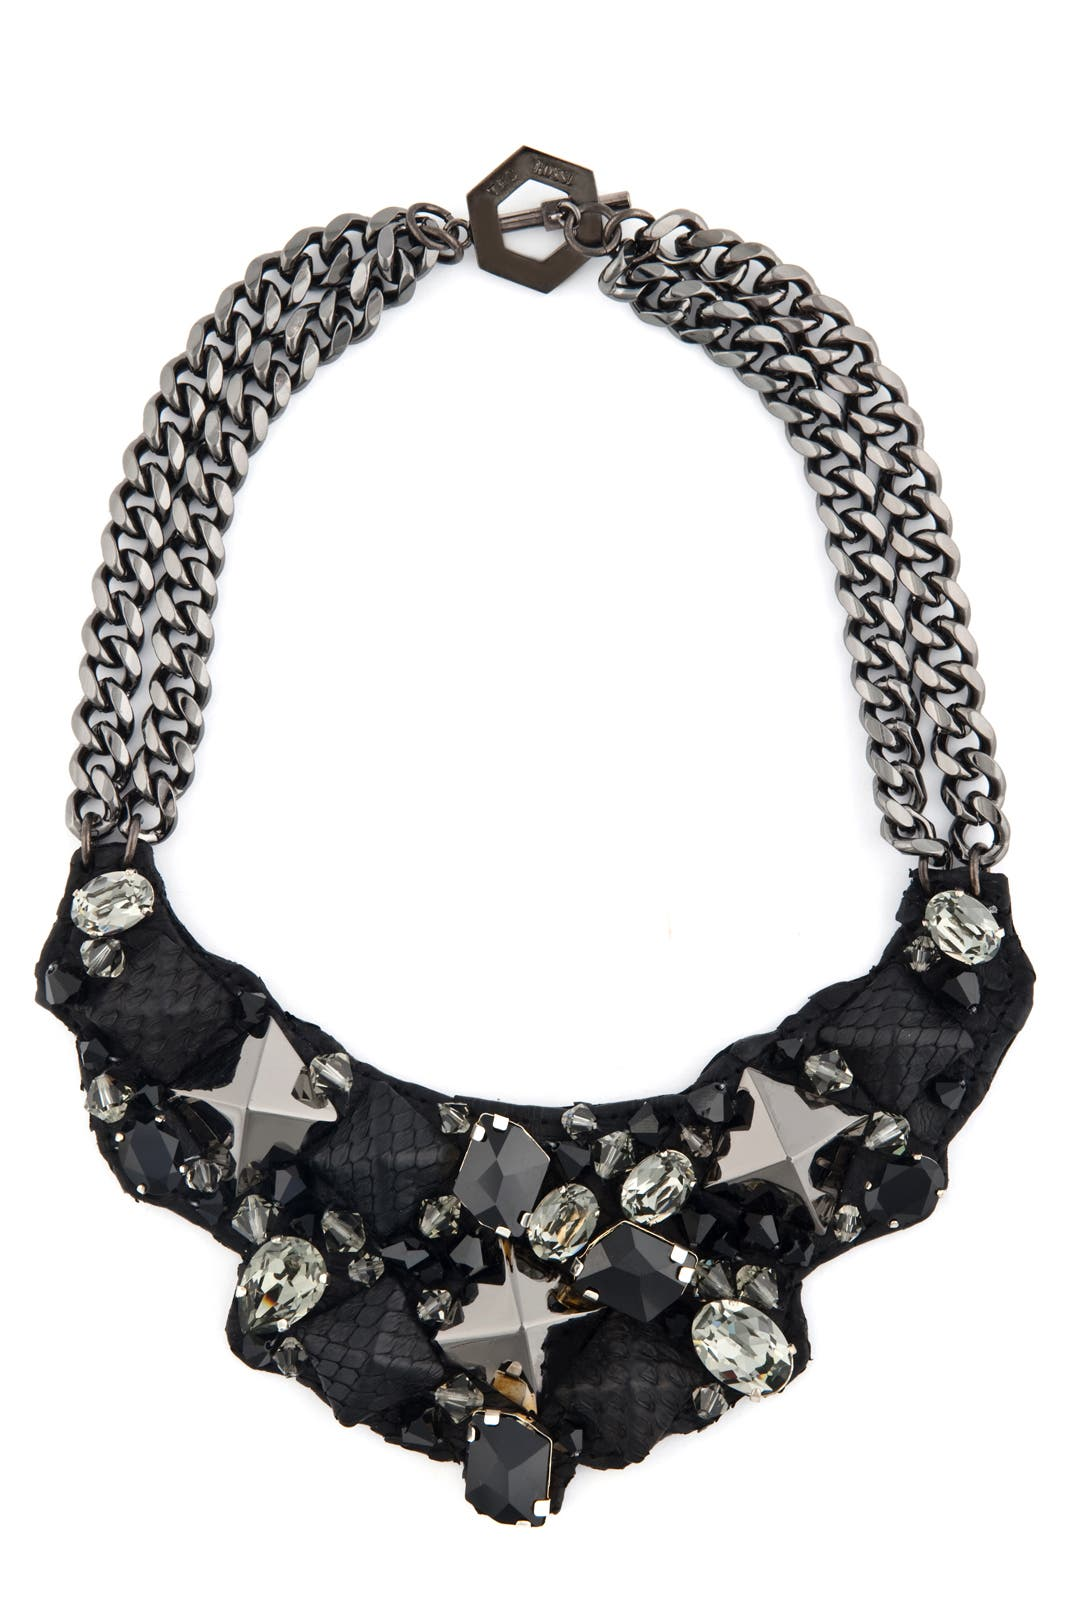 Cosmic Python Bling Bib by Ted Rossi